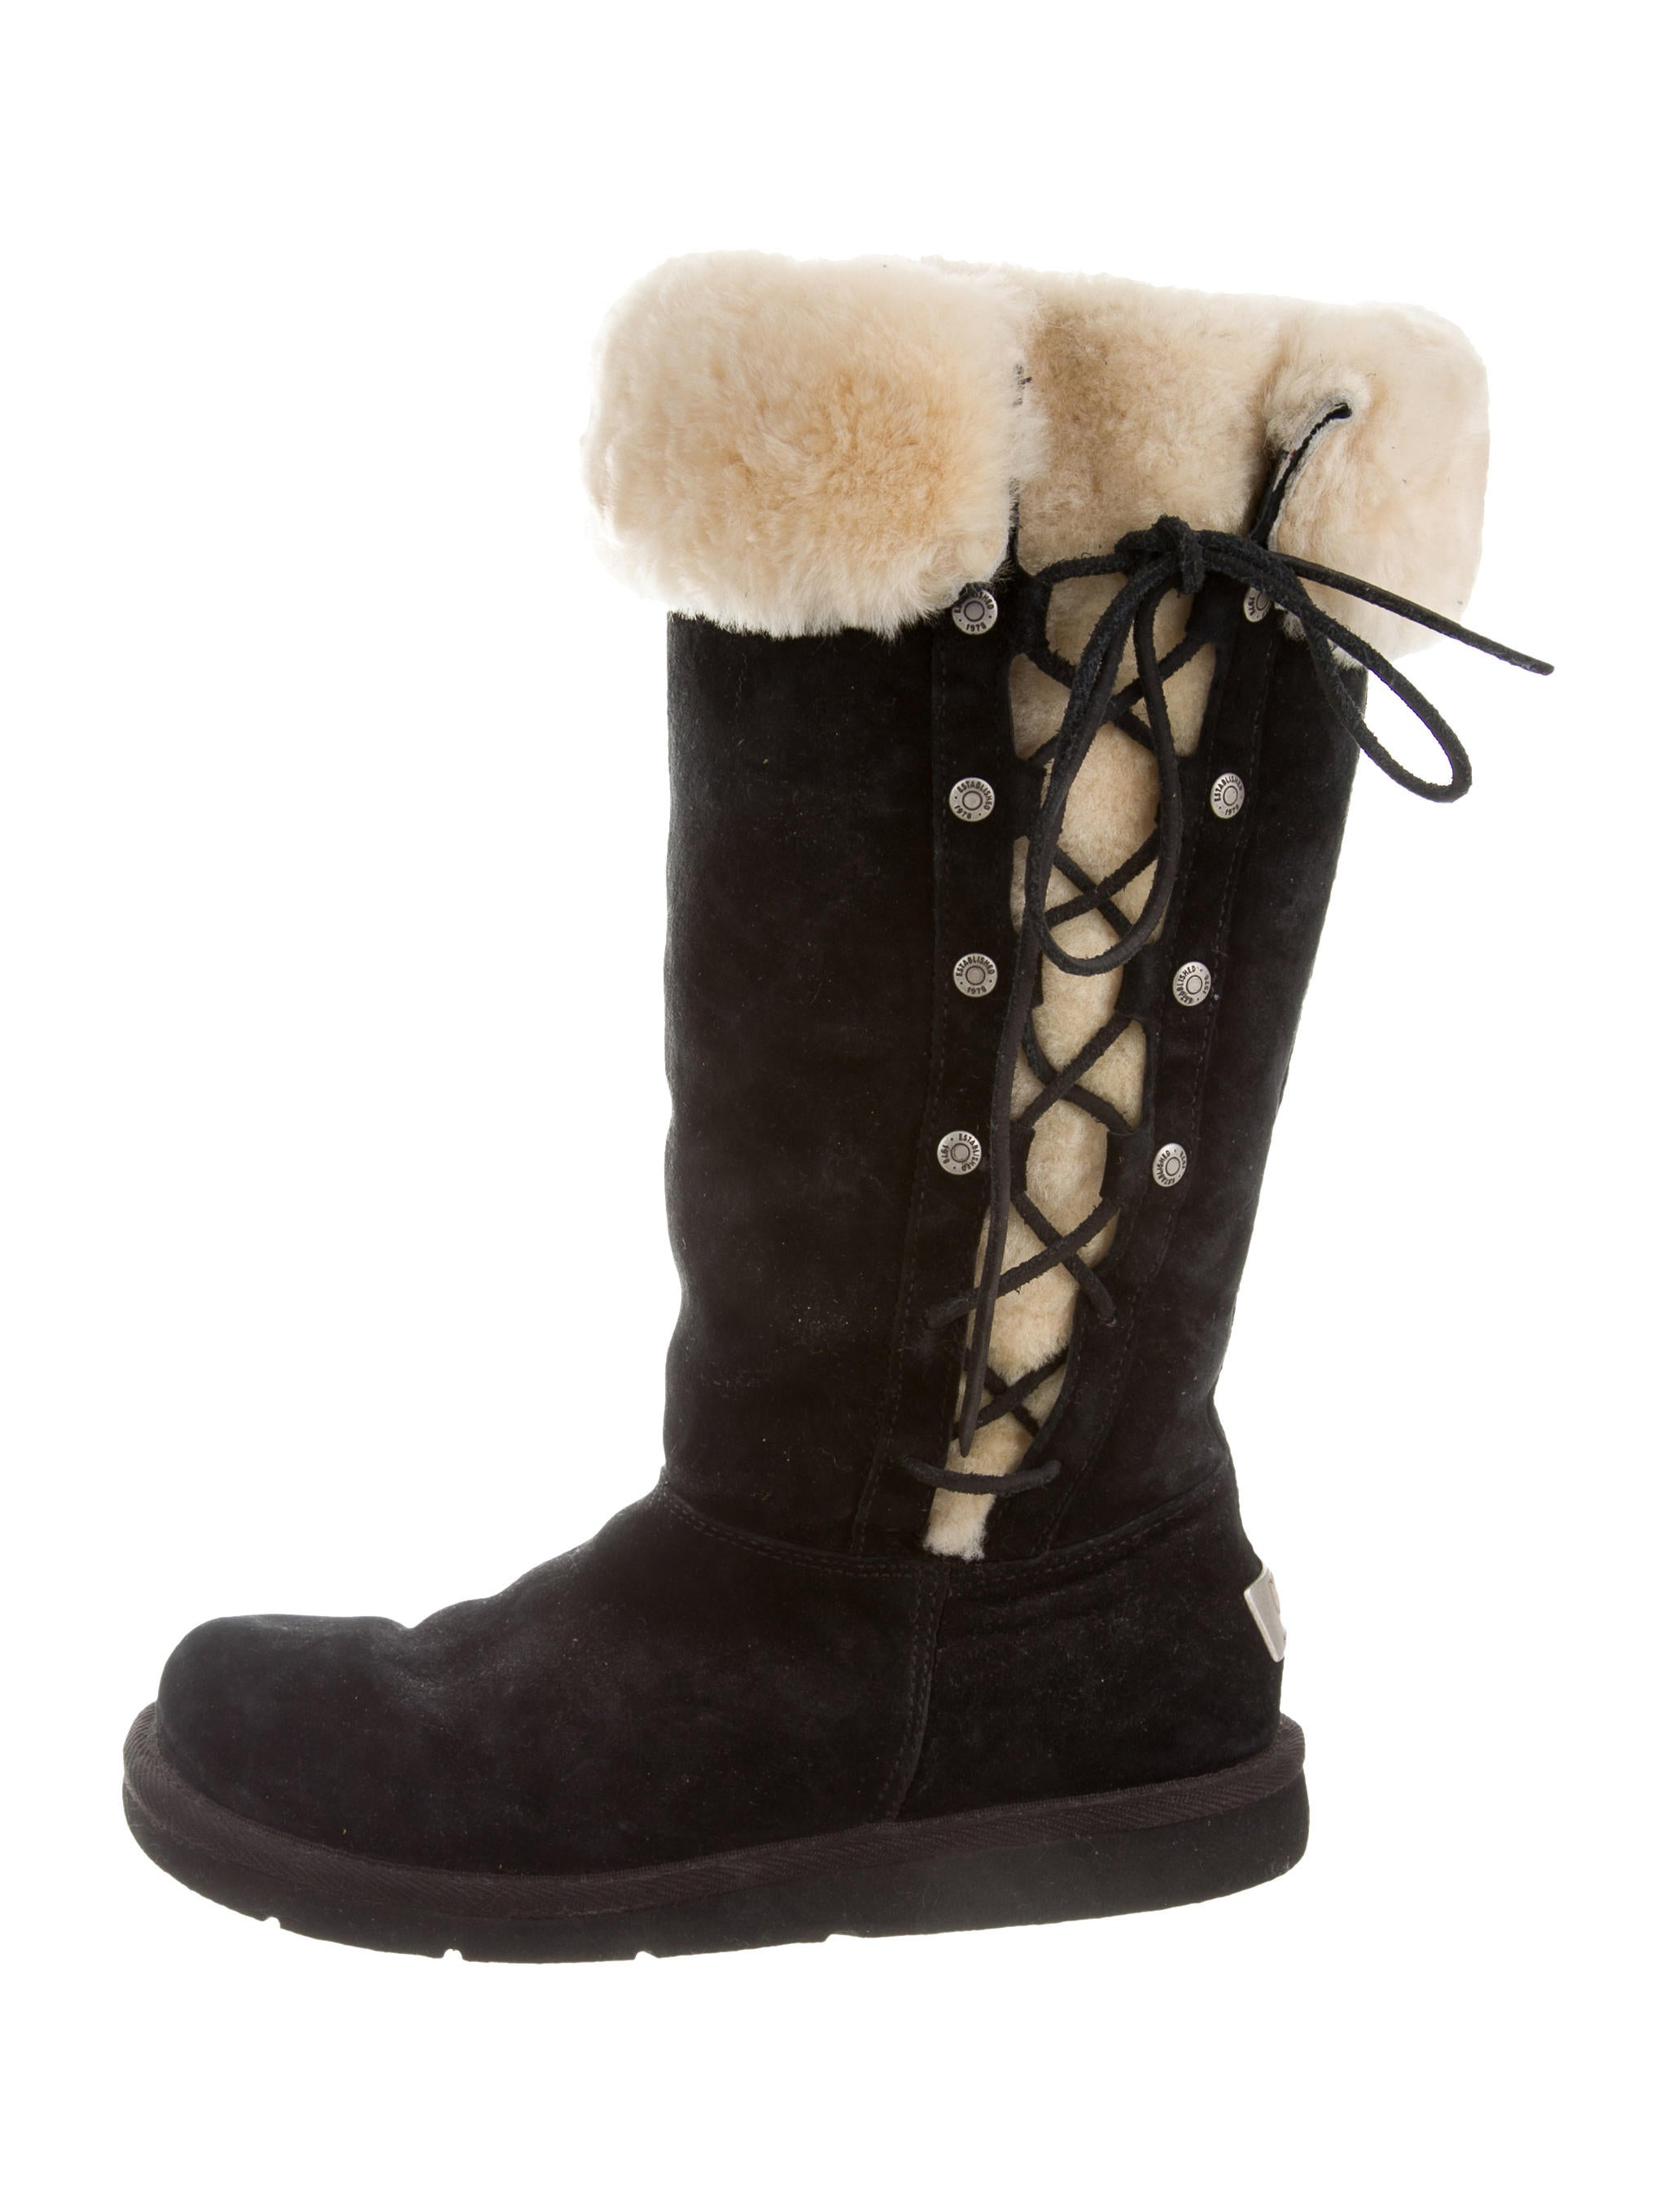 Ugg Australia Shearling Lace Up Boots Shoes Wuugg20932